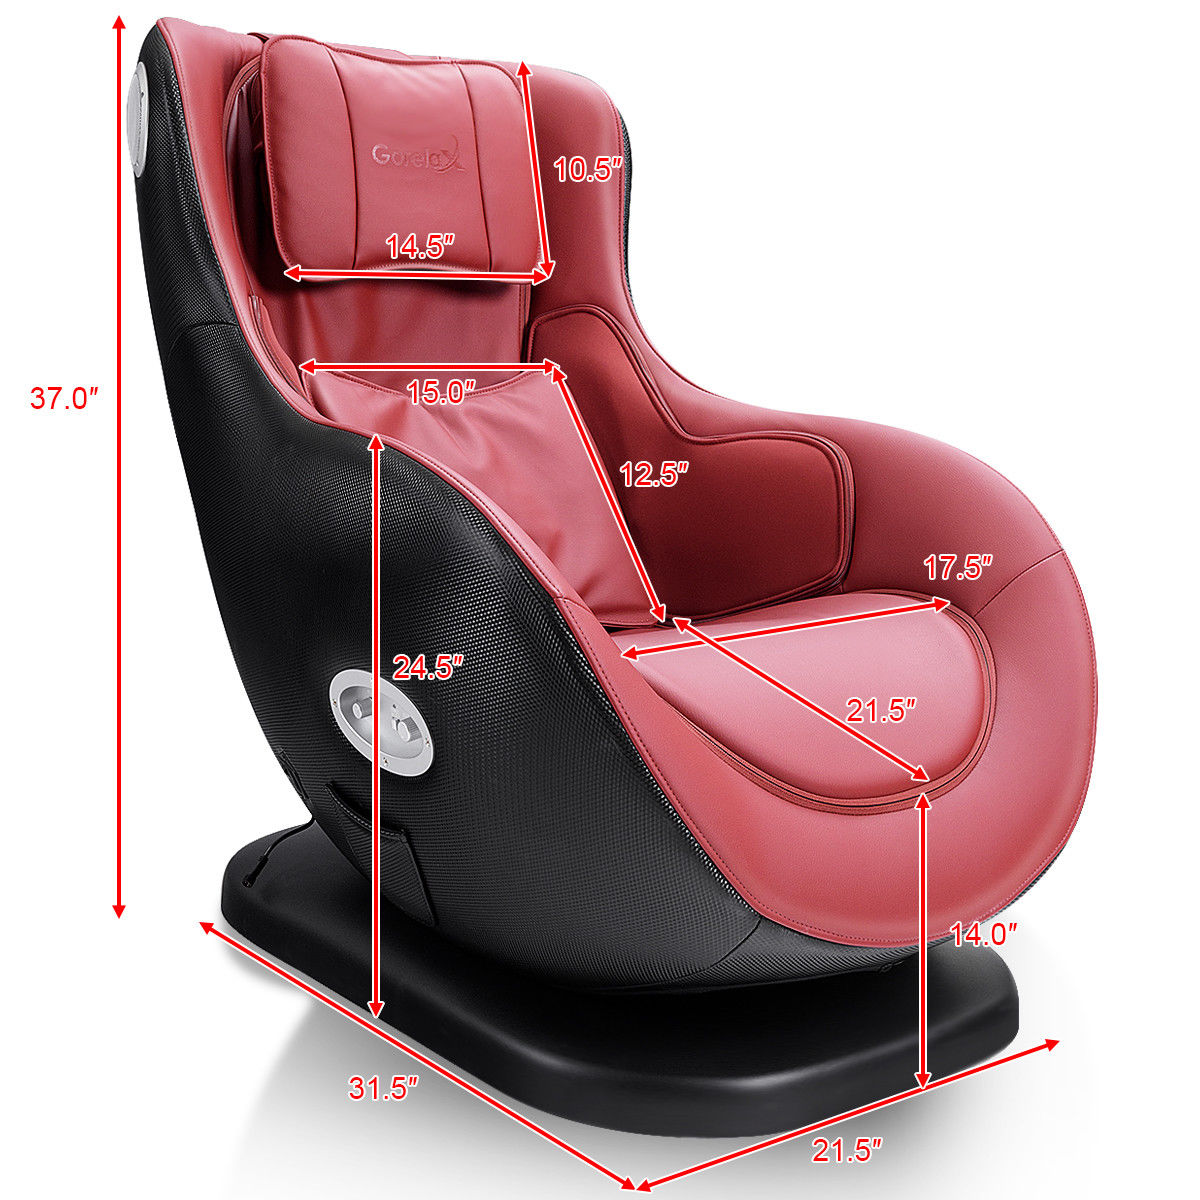 Luxury Massage Chair Heated W/ Bluetooth Speaker &USB Charger - image 2 of 10